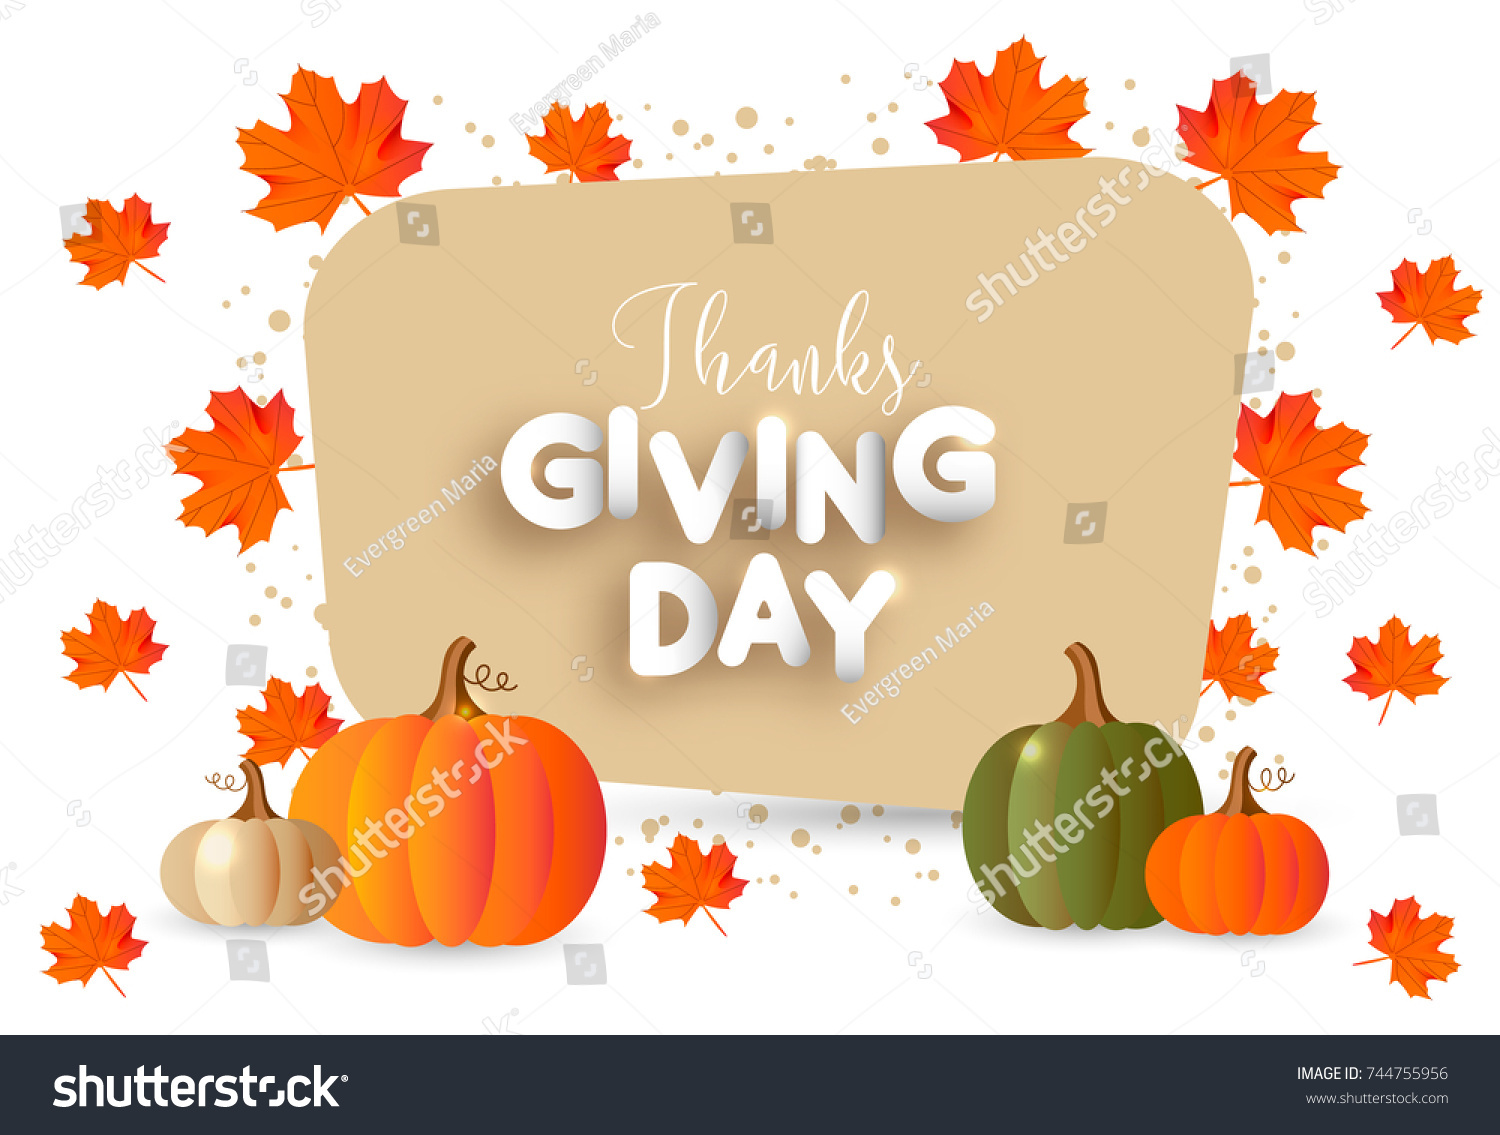 Happy thanksgiving day greeting card poster stock vector 744755956 happy thanksgiving day greeting card poster banner flyer autumn background with leaves m4hsunfo